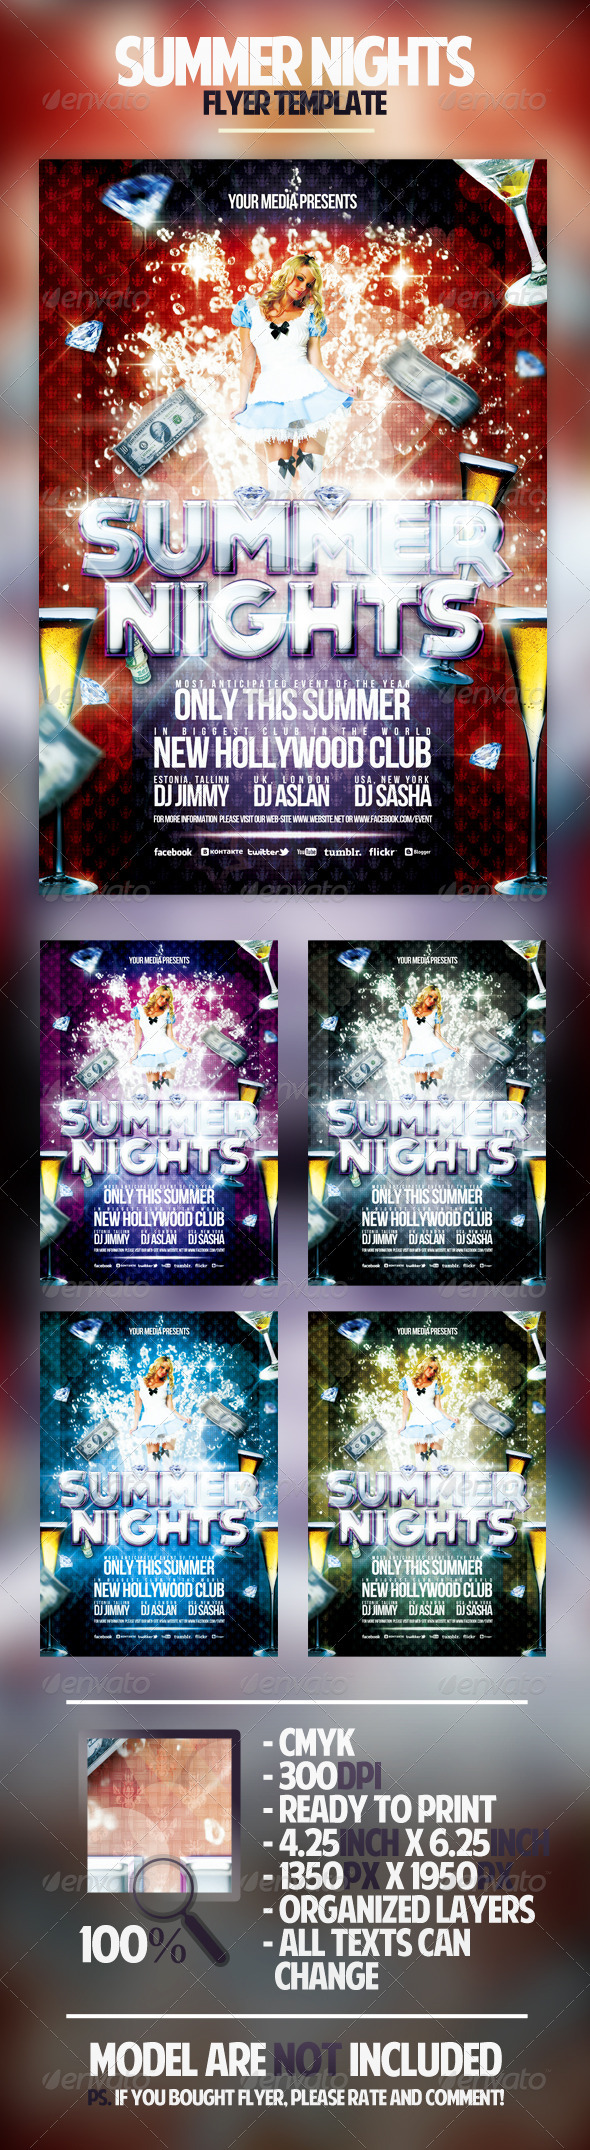 Summer Nights Flyer Template - Clubs & Parties Events